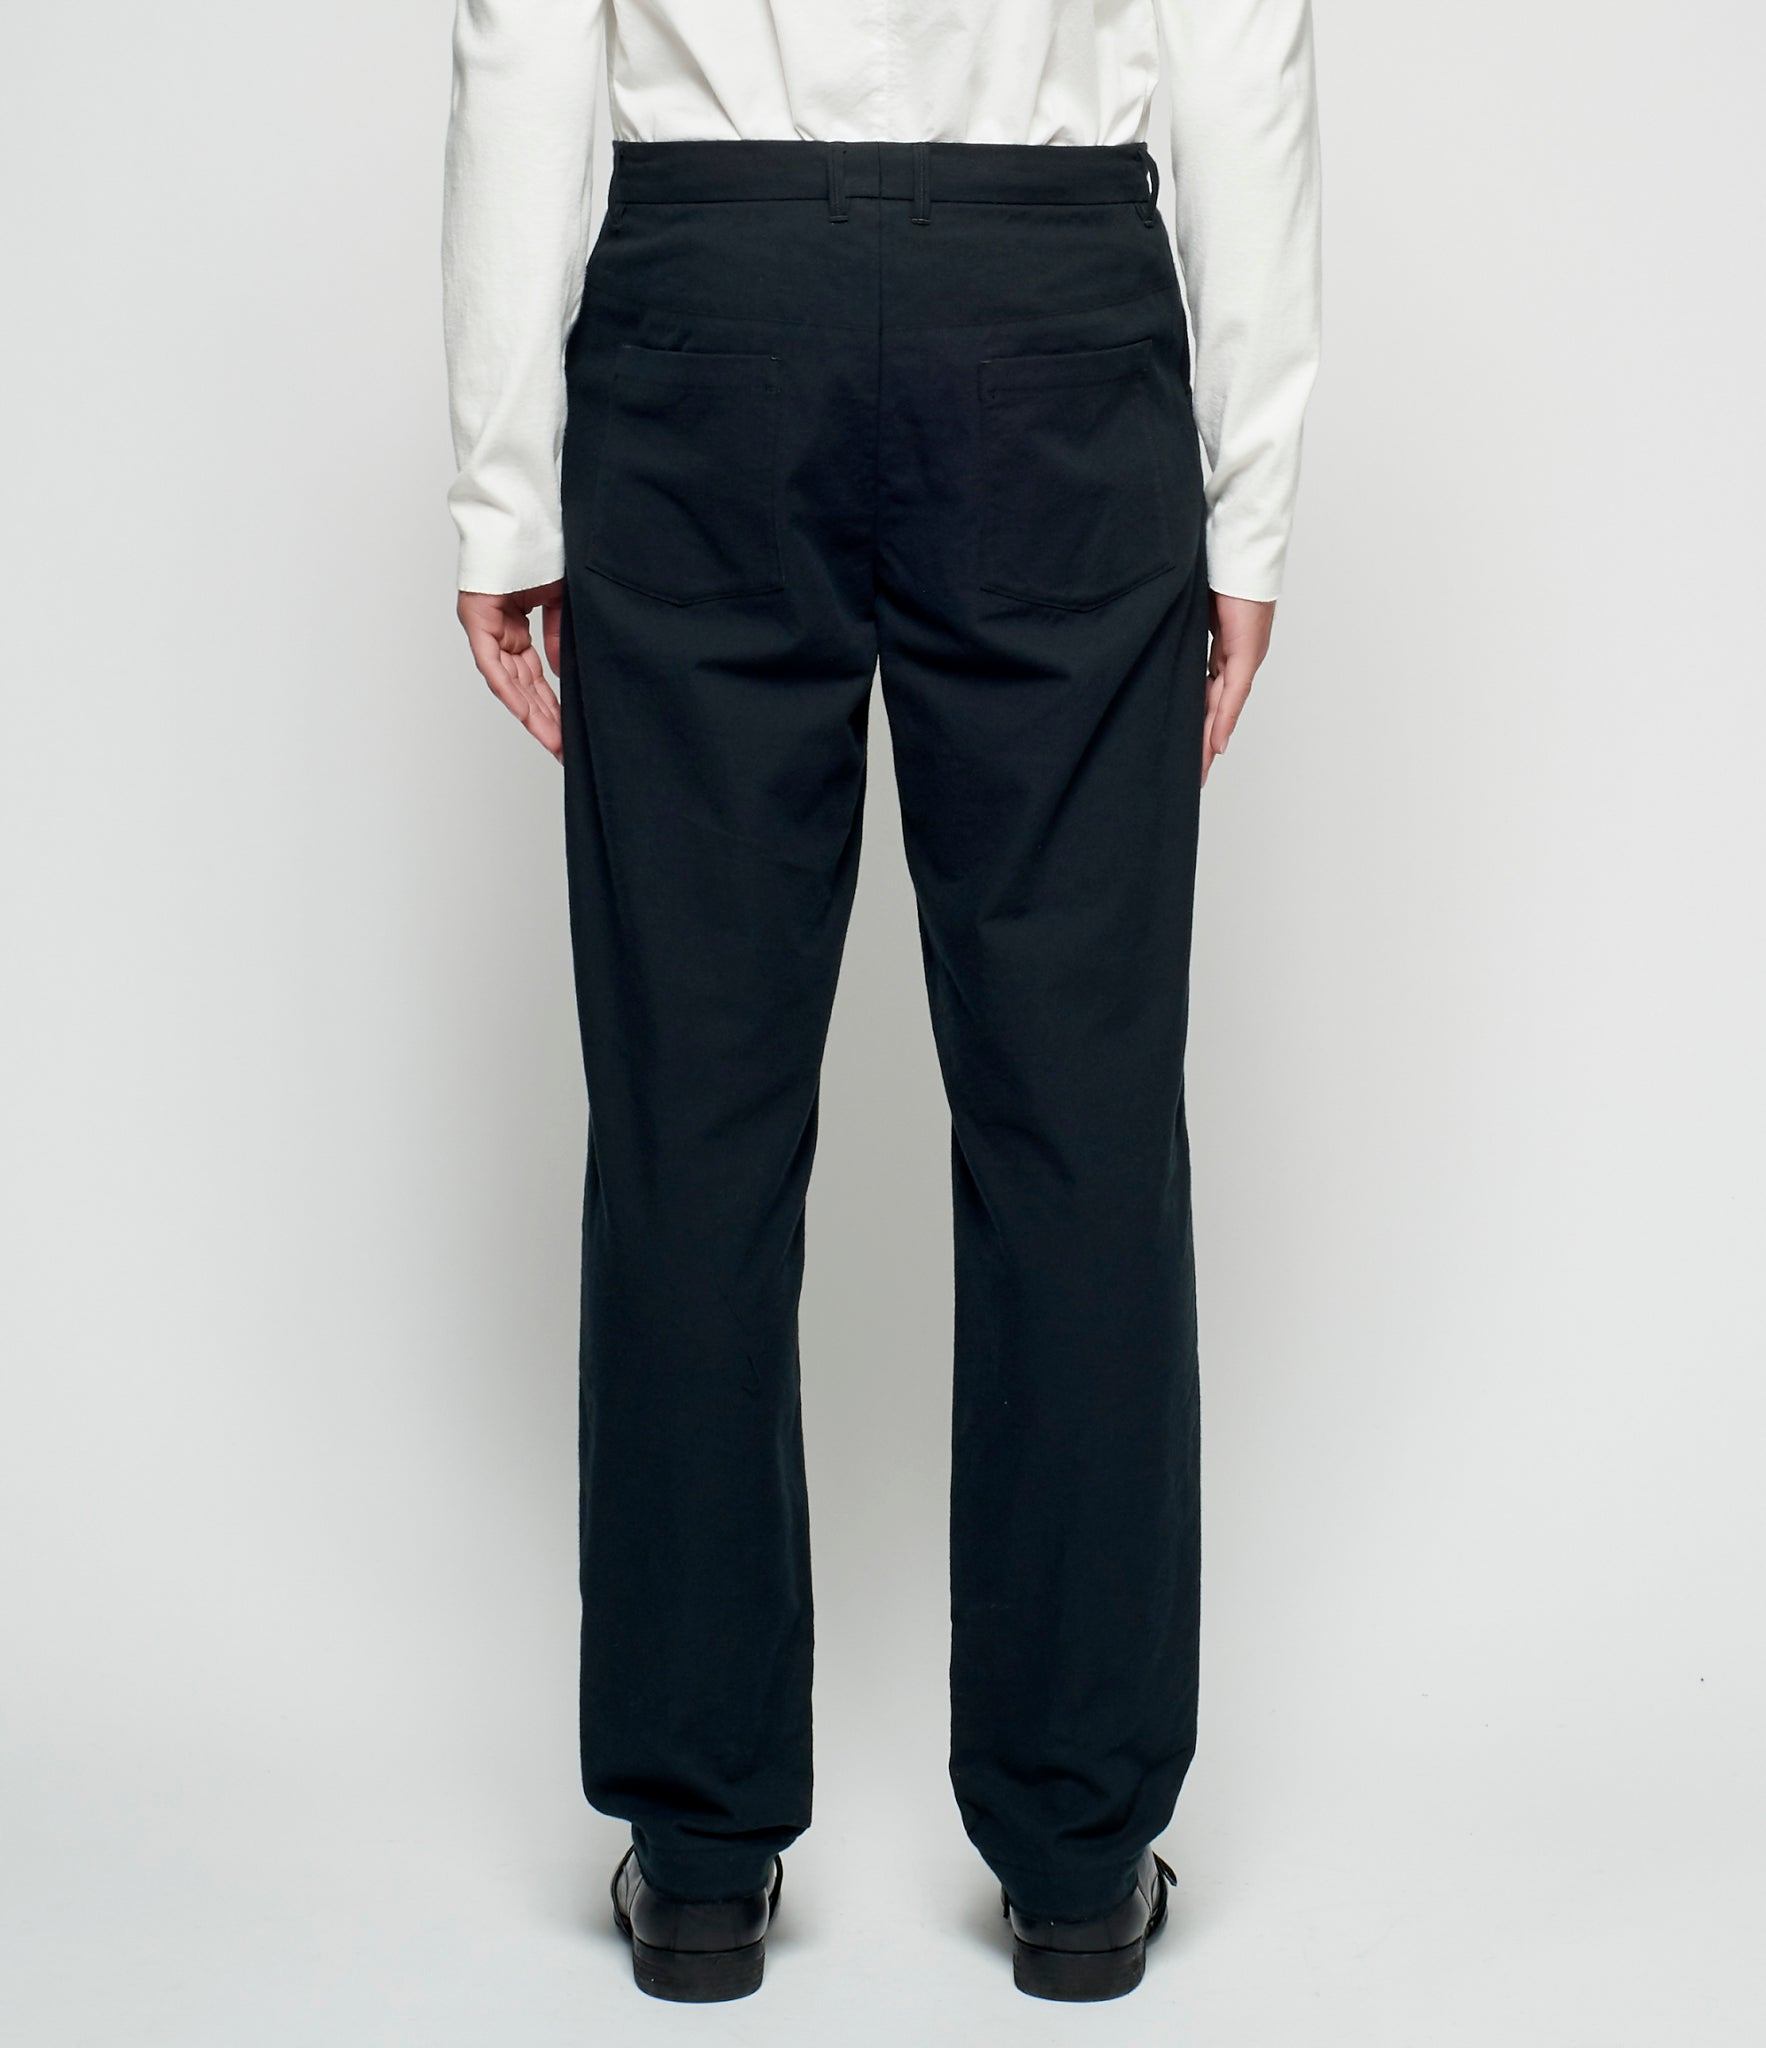 'T Ensemble Frame-Lined Jeans